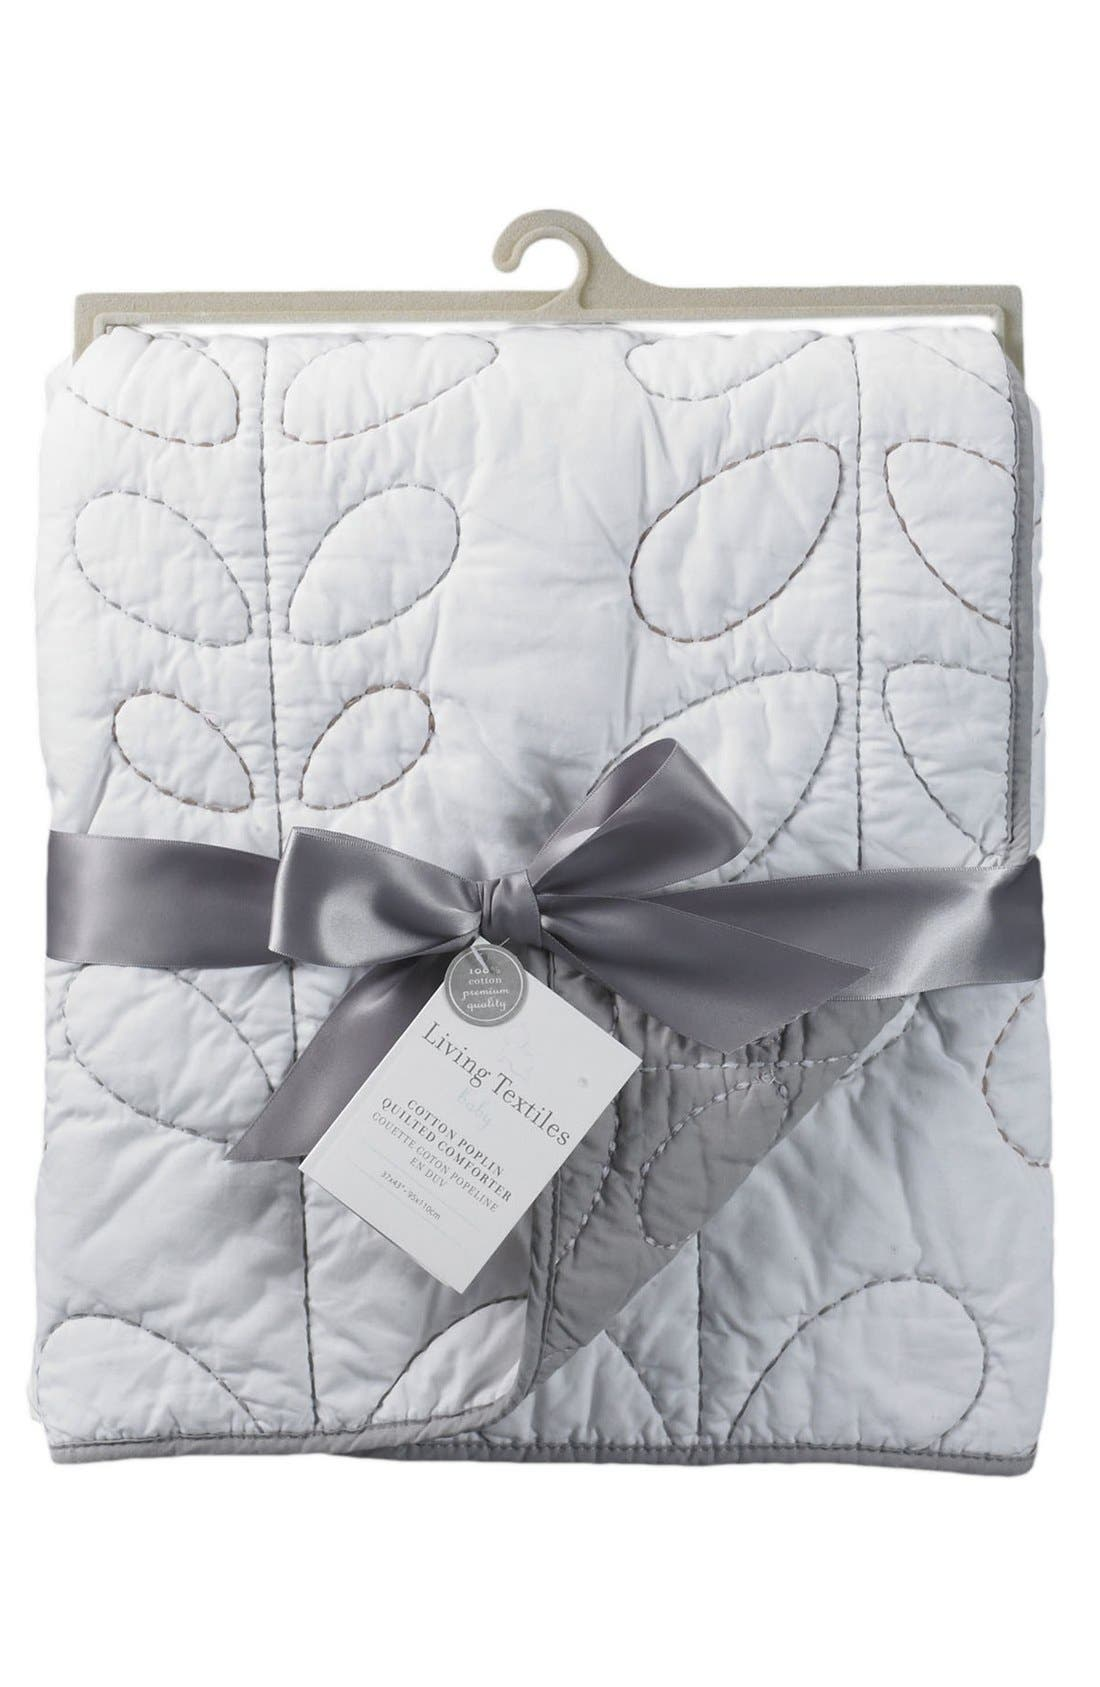 Poplin Quilted Comforter,                             Main thumbnail 1, color,                             White/ Grey